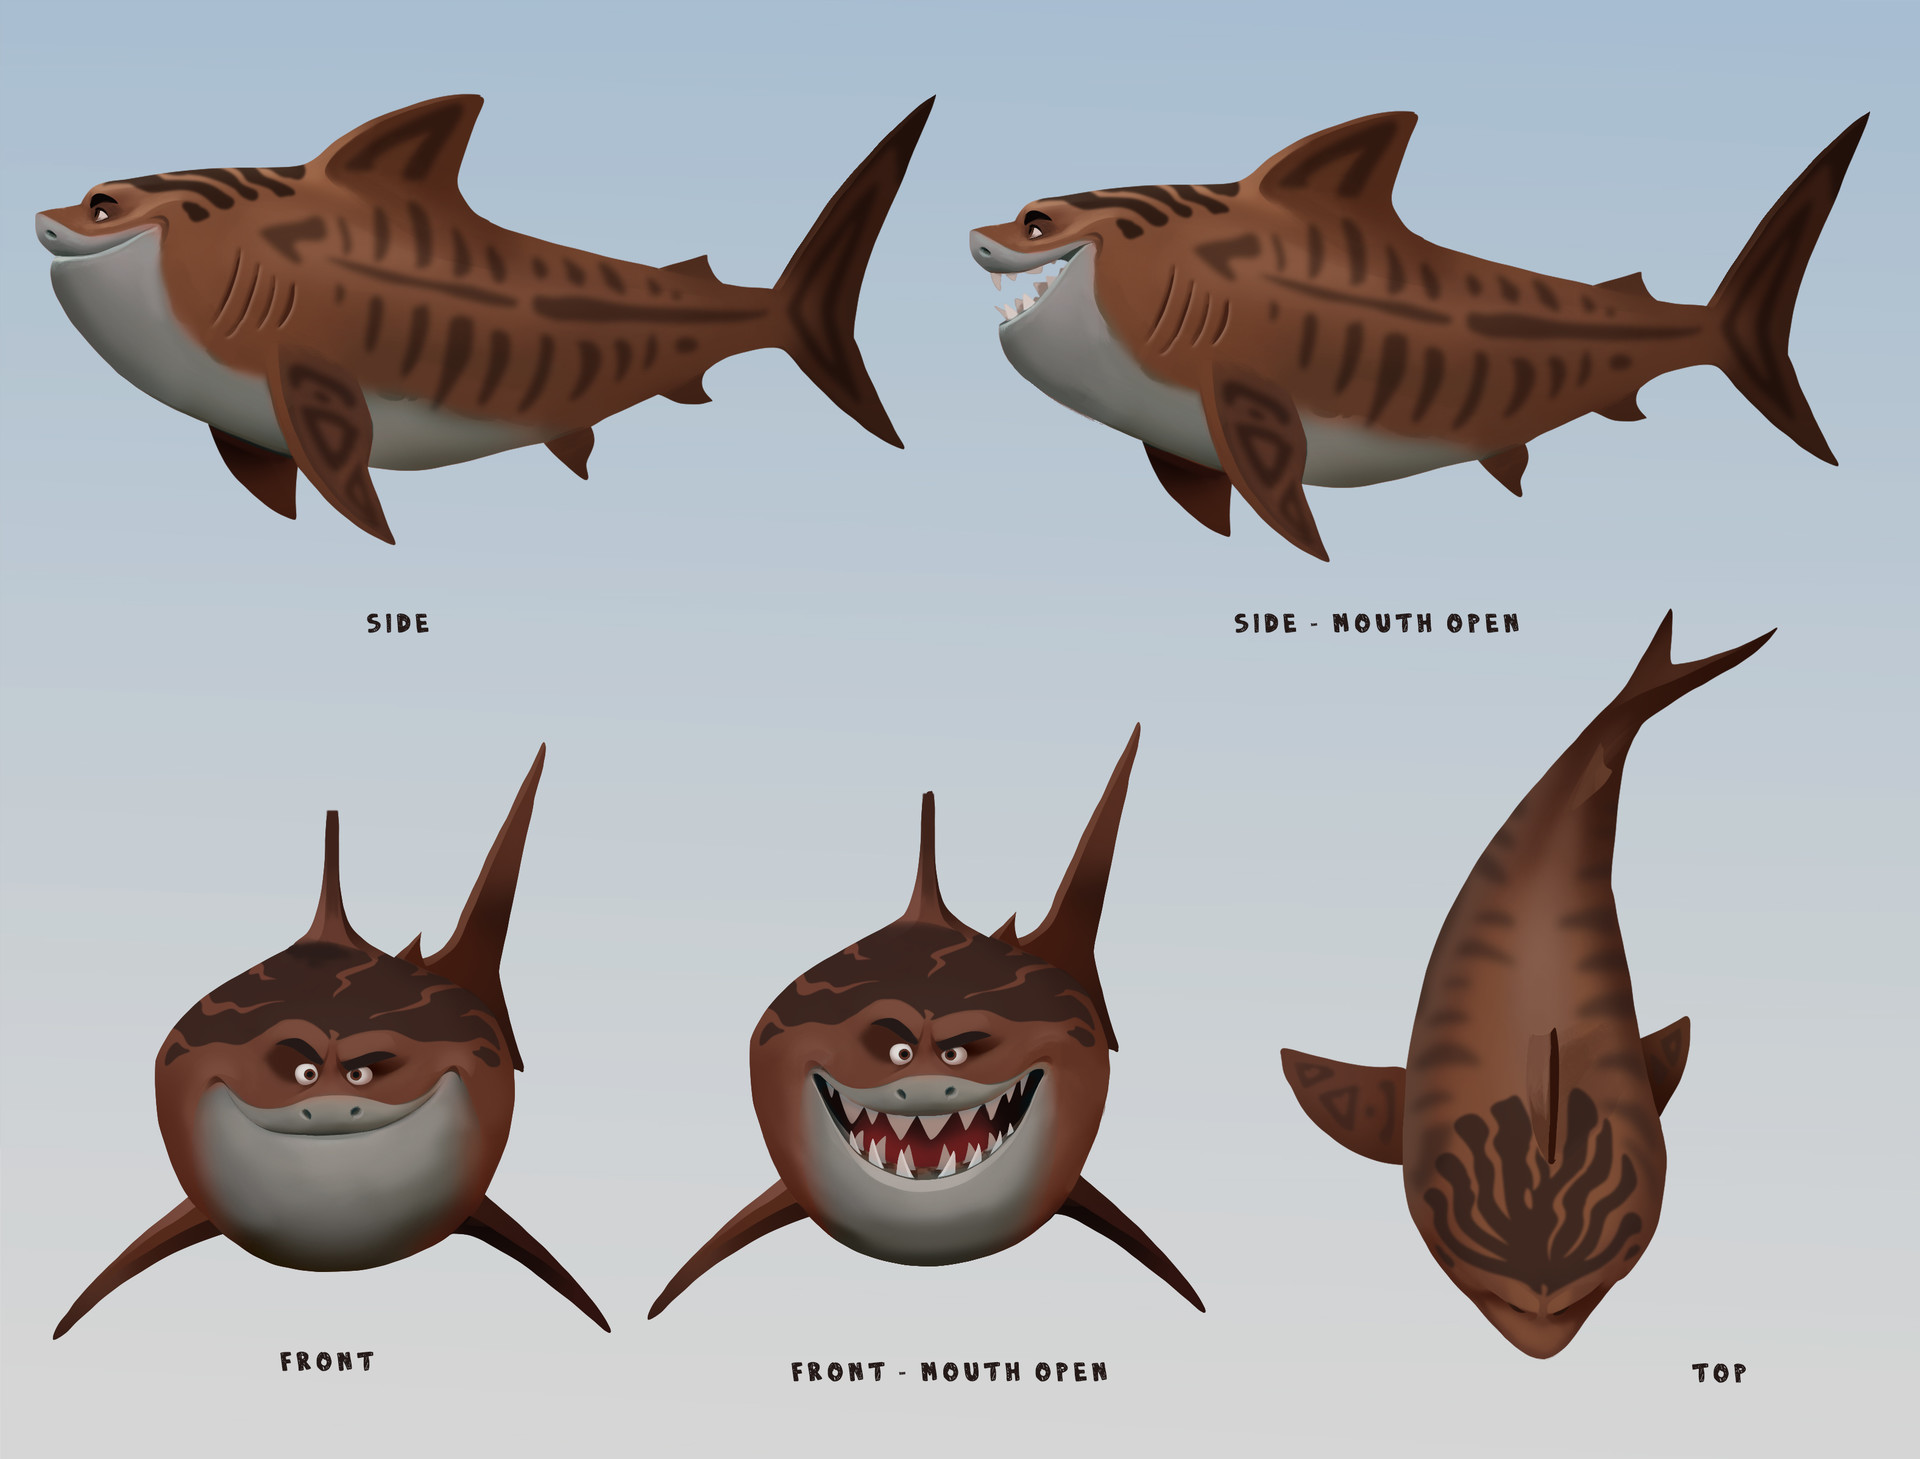 moana wildlife and animal characters jenny harder maui shark transformations based on the wda concepts